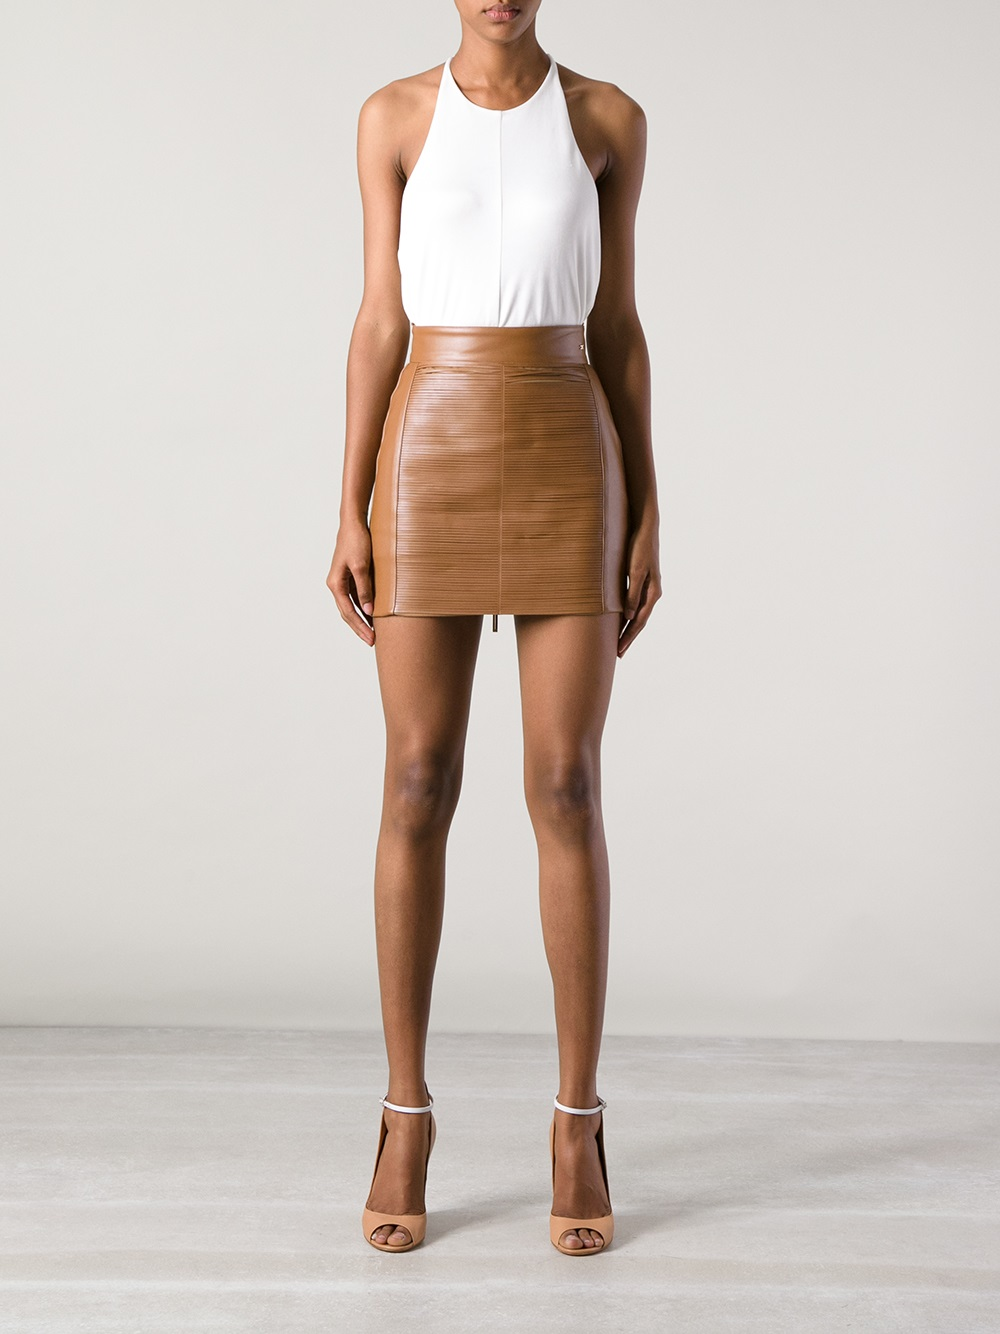 Elisabetta franchi Leather Mini Skirt in Brown | Lyst